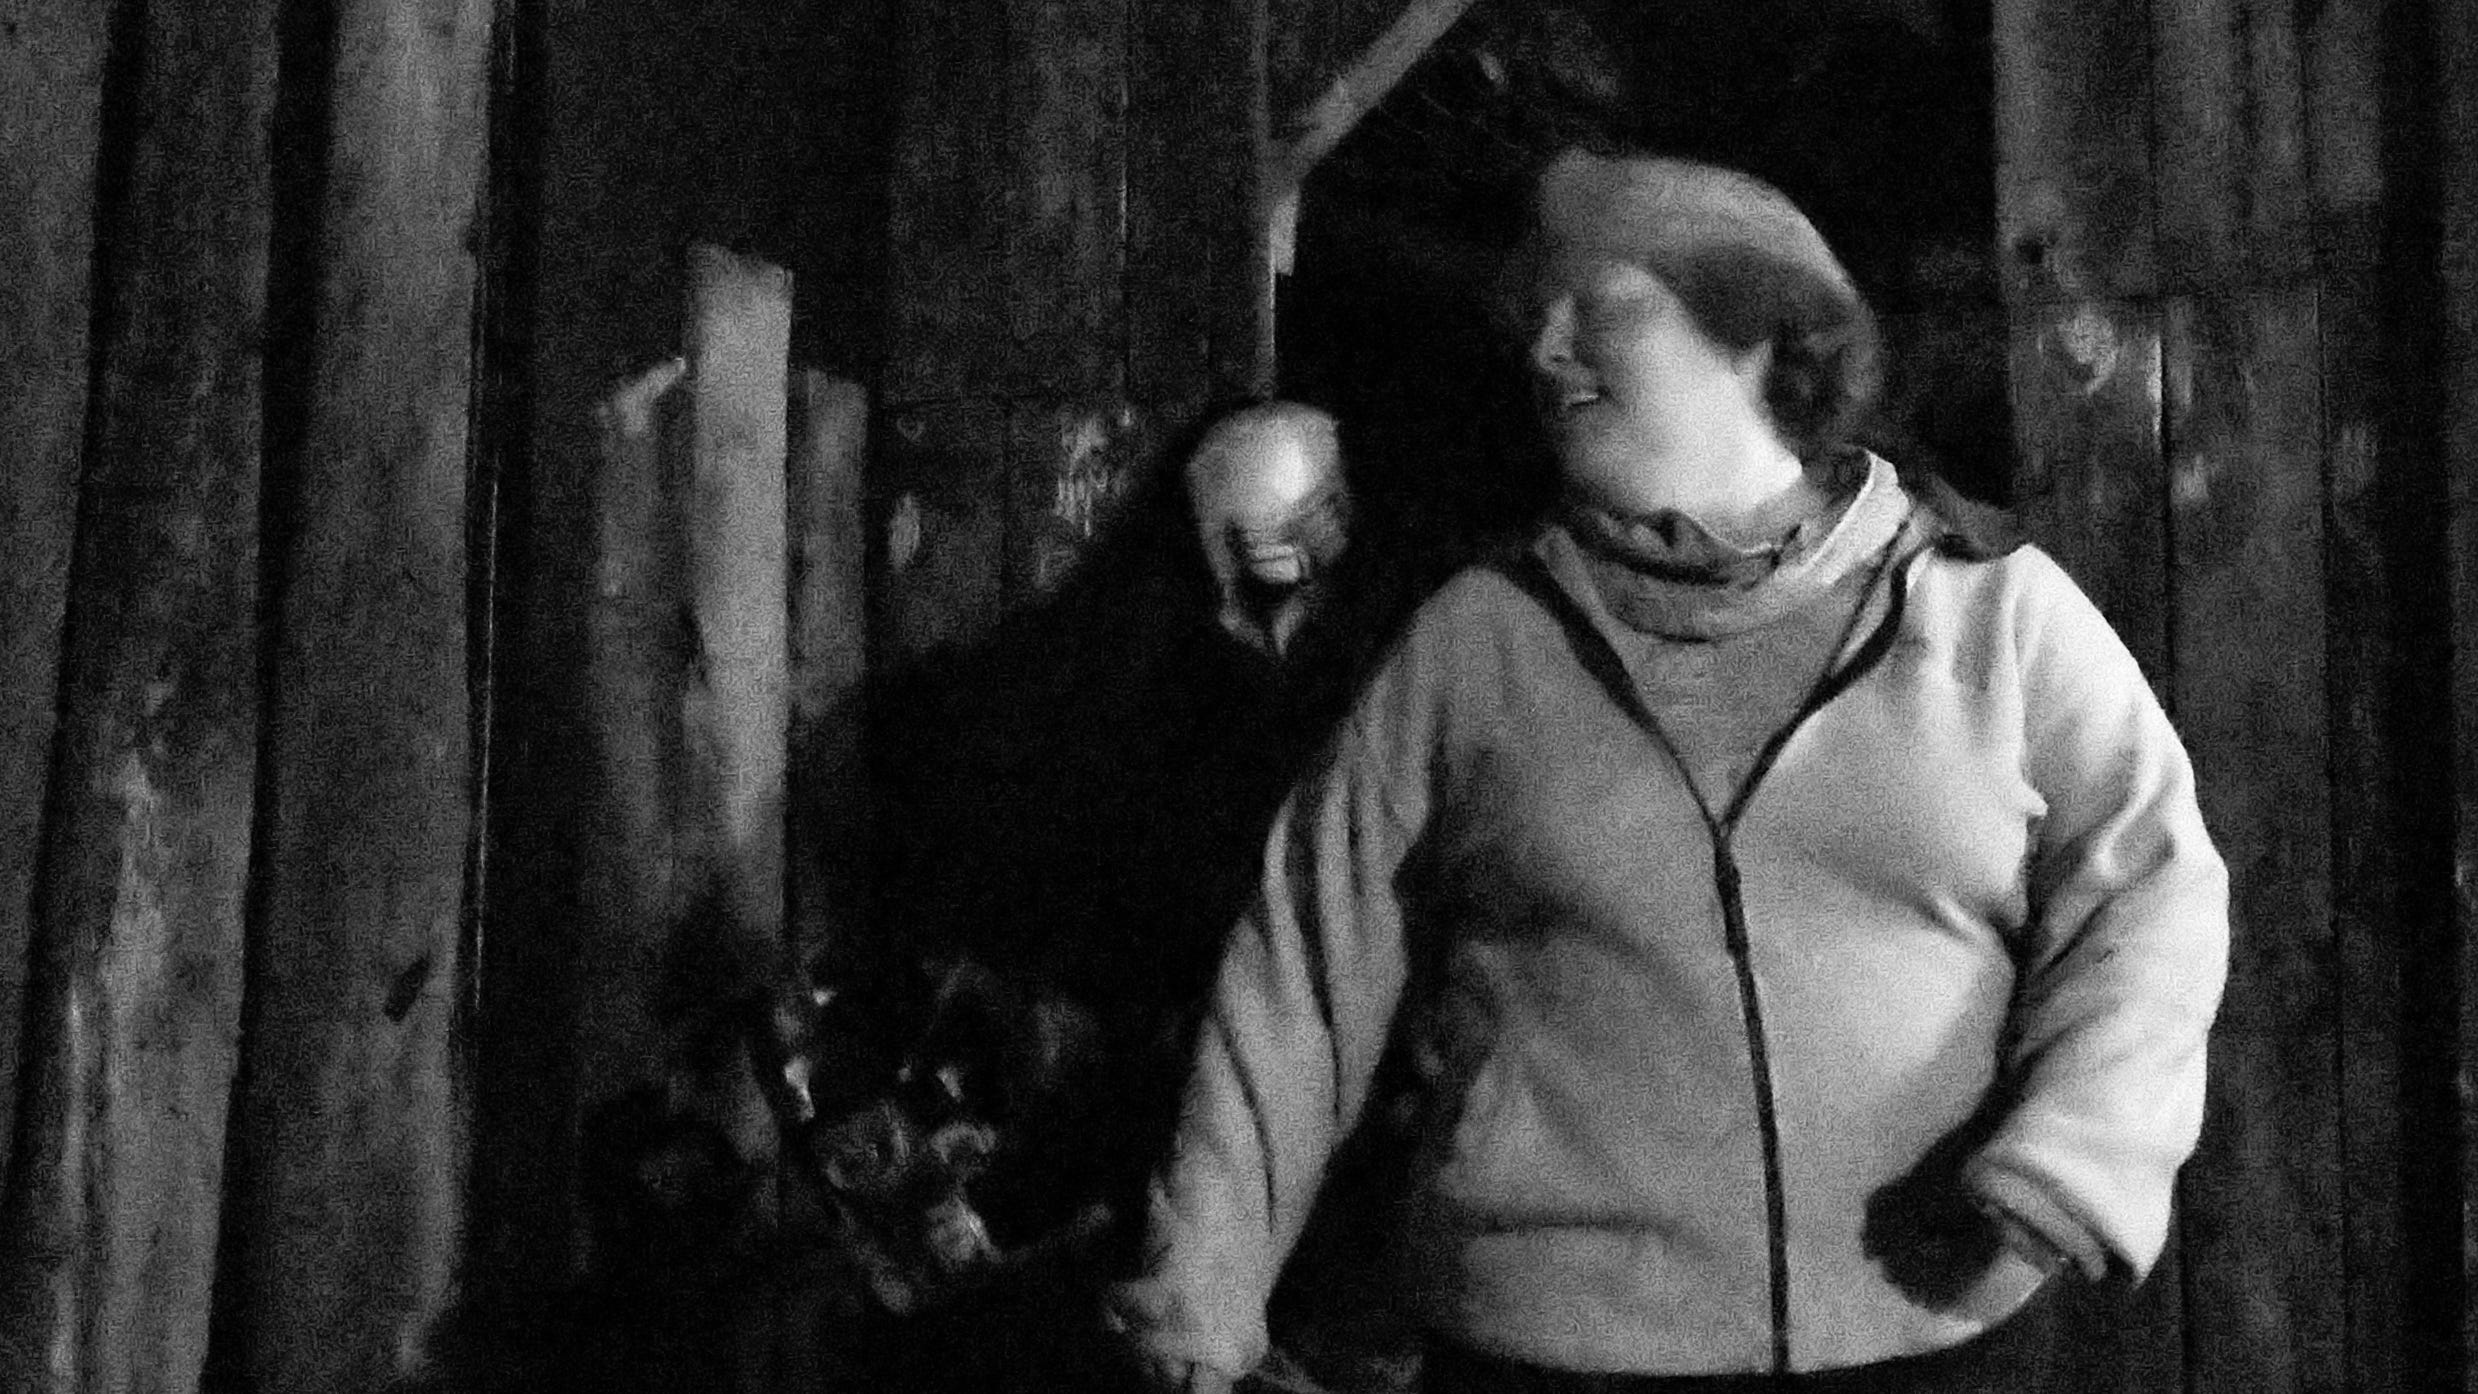 There is always some ghoulish figure waiting to scare thrill seekers at Kim's Krypt Haunted Mill, October 12, 2018.